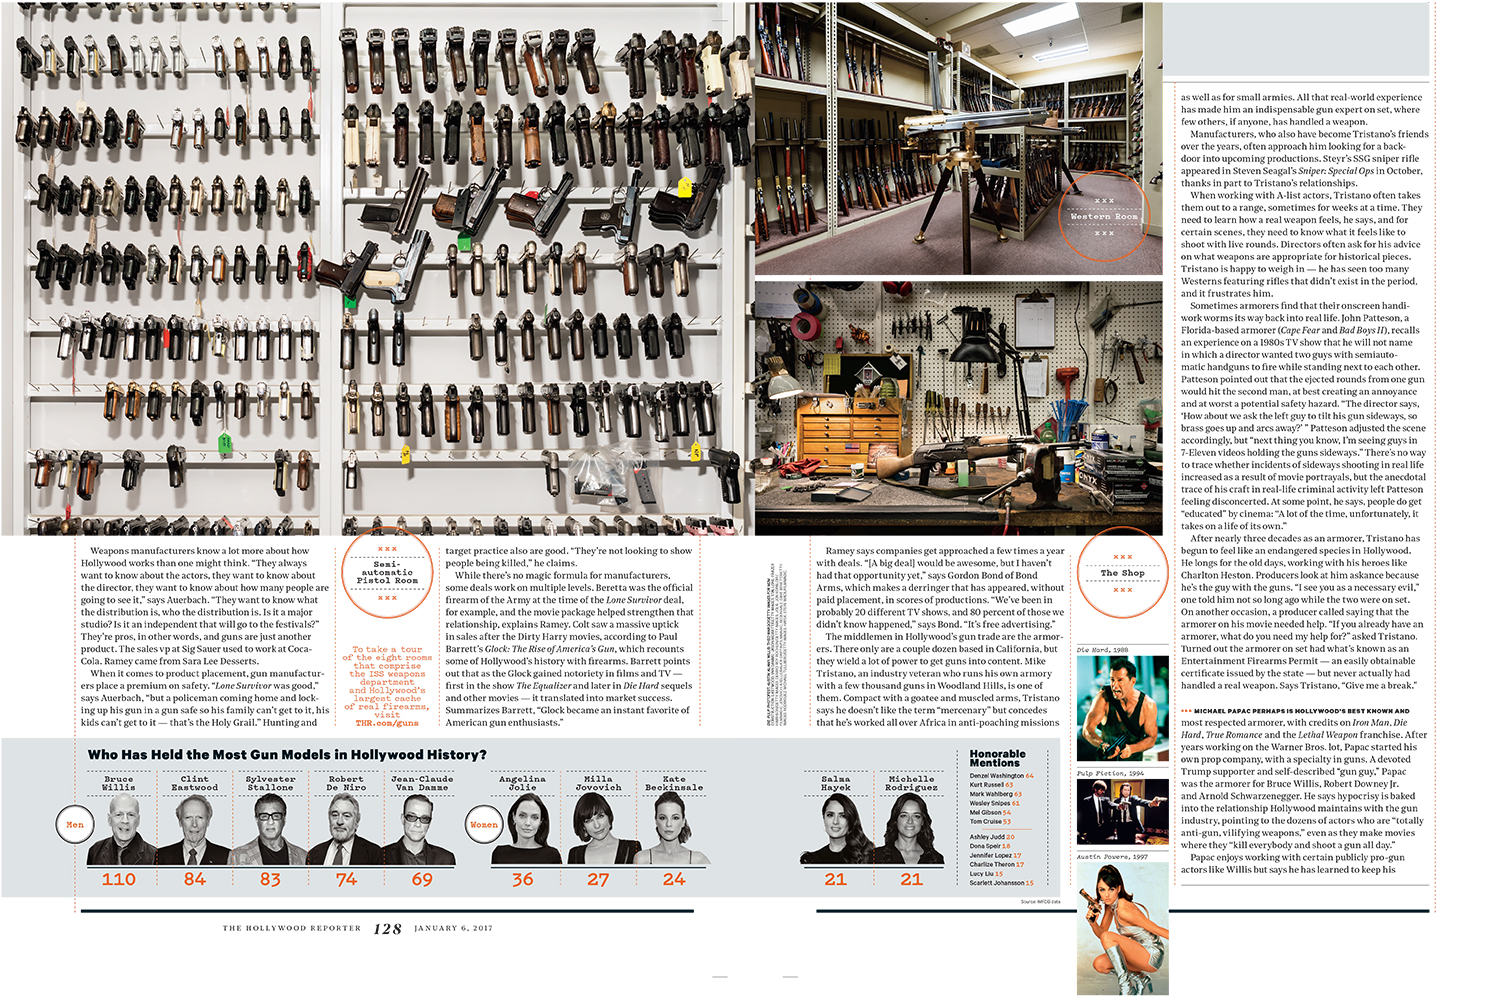 A story for The Hollywood Reporter about the gun industry's lucrative and co-dependant relationship with Hollywood. All photographs were taken at ISS Props (Independent Studio Services) weaponry department. ISS has over 16,000 weapons and is the largest armorer for Hollywood films.